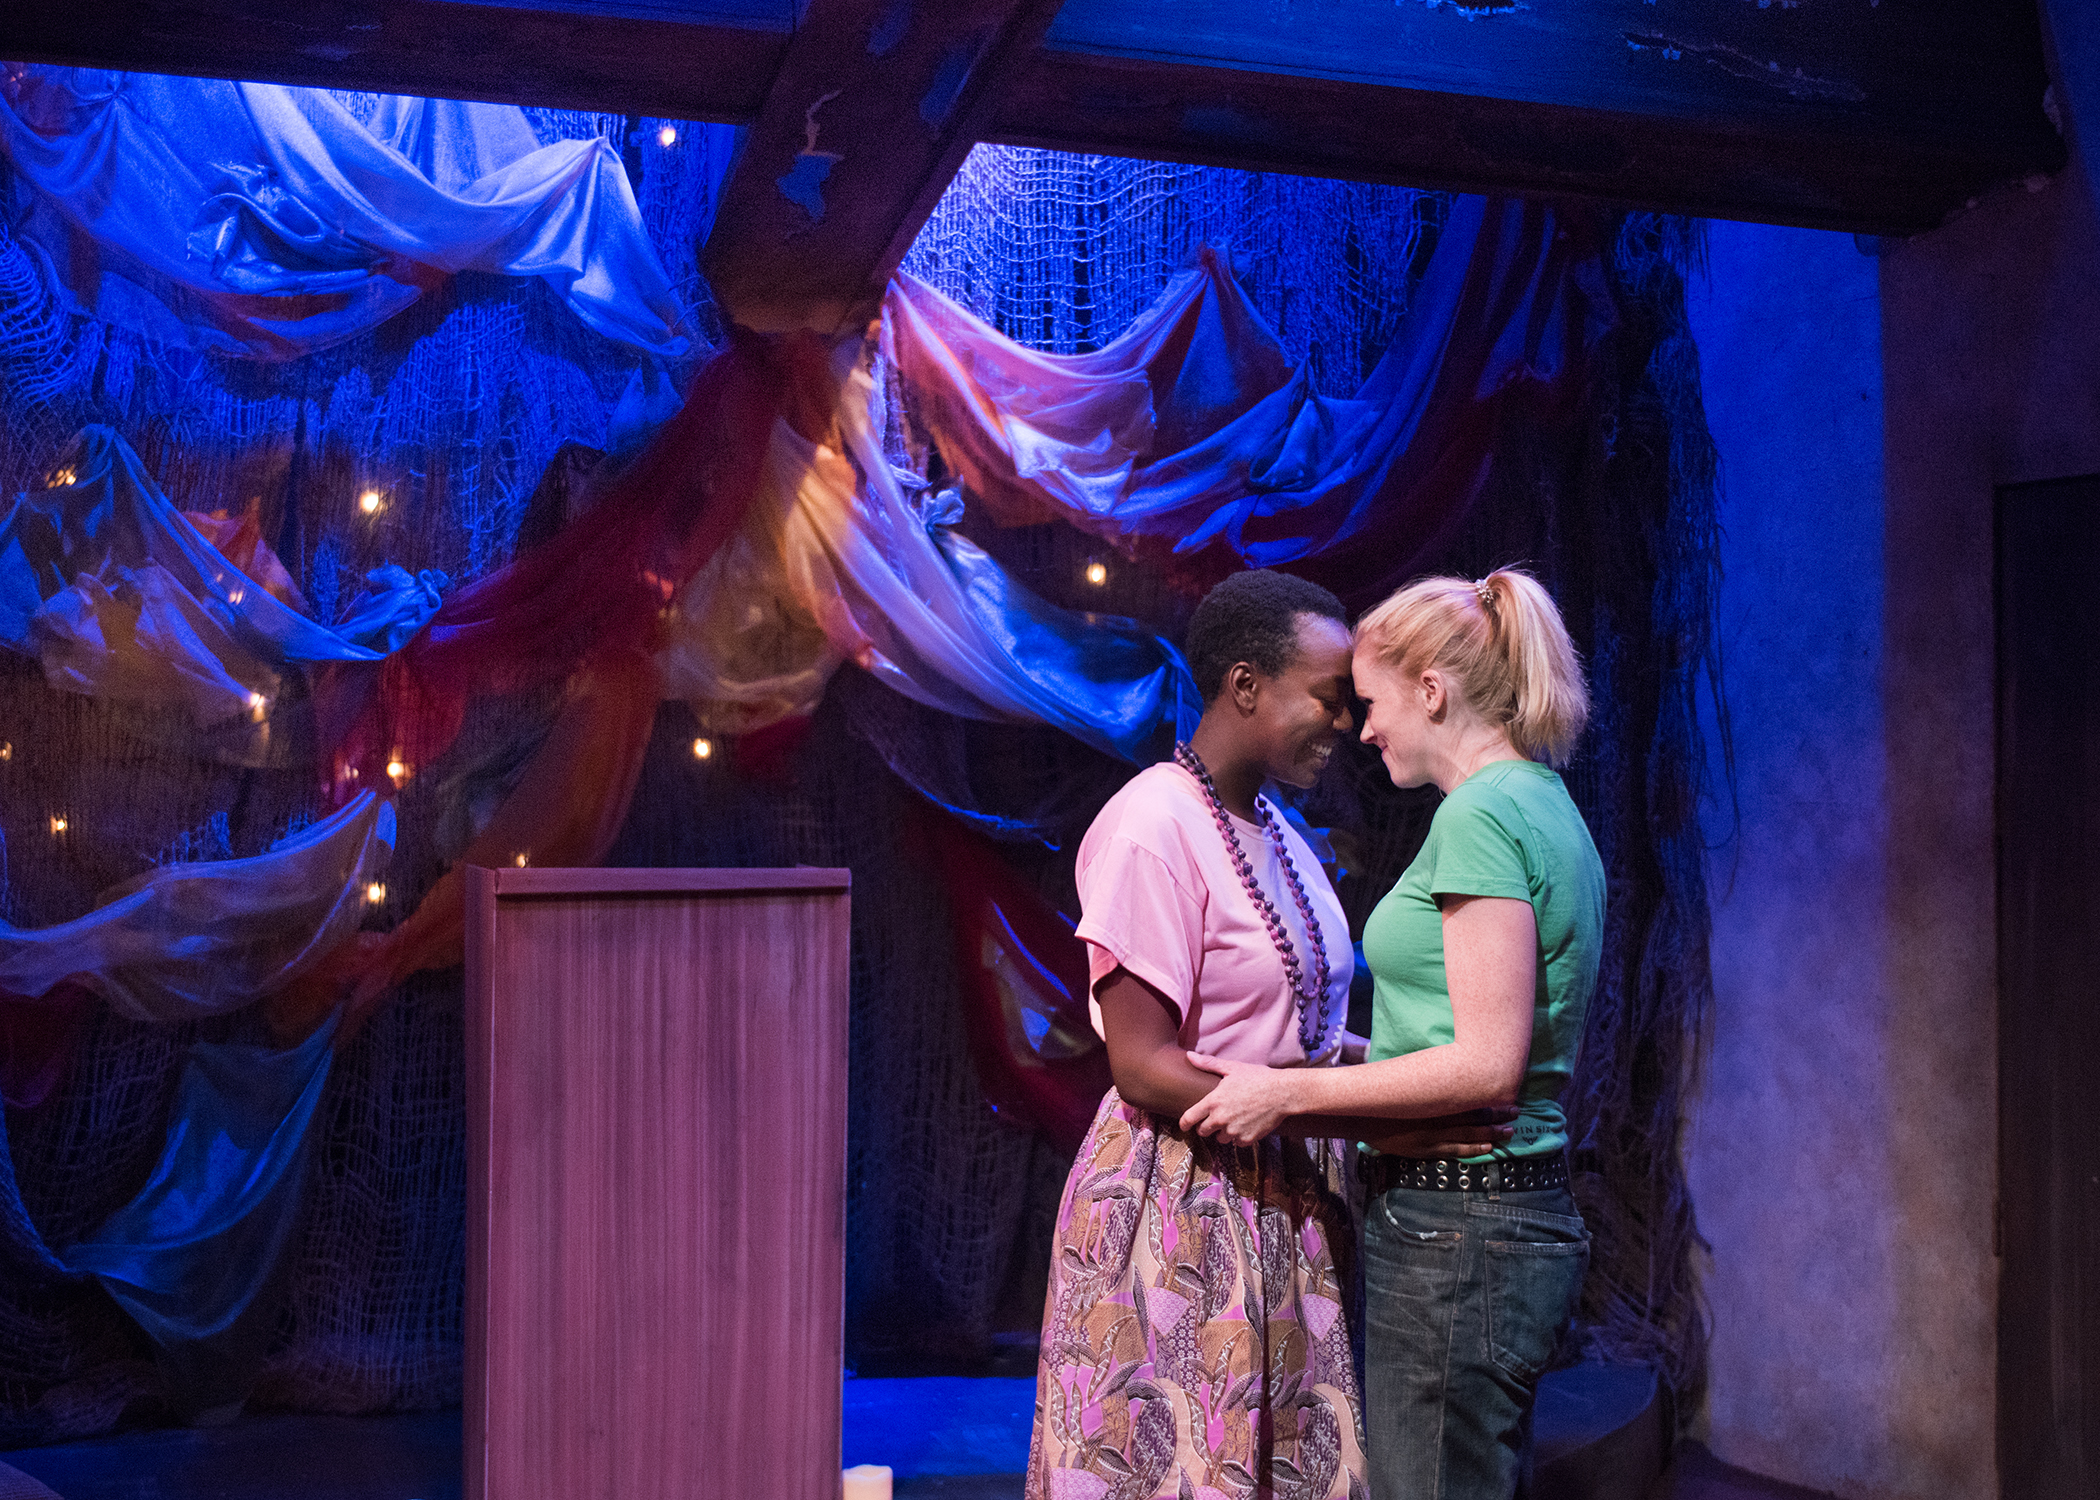 Adiel (Gabriella Momah) and Chris (Megan Timpane) share a stolen moment together. Photo by Lois Tema.